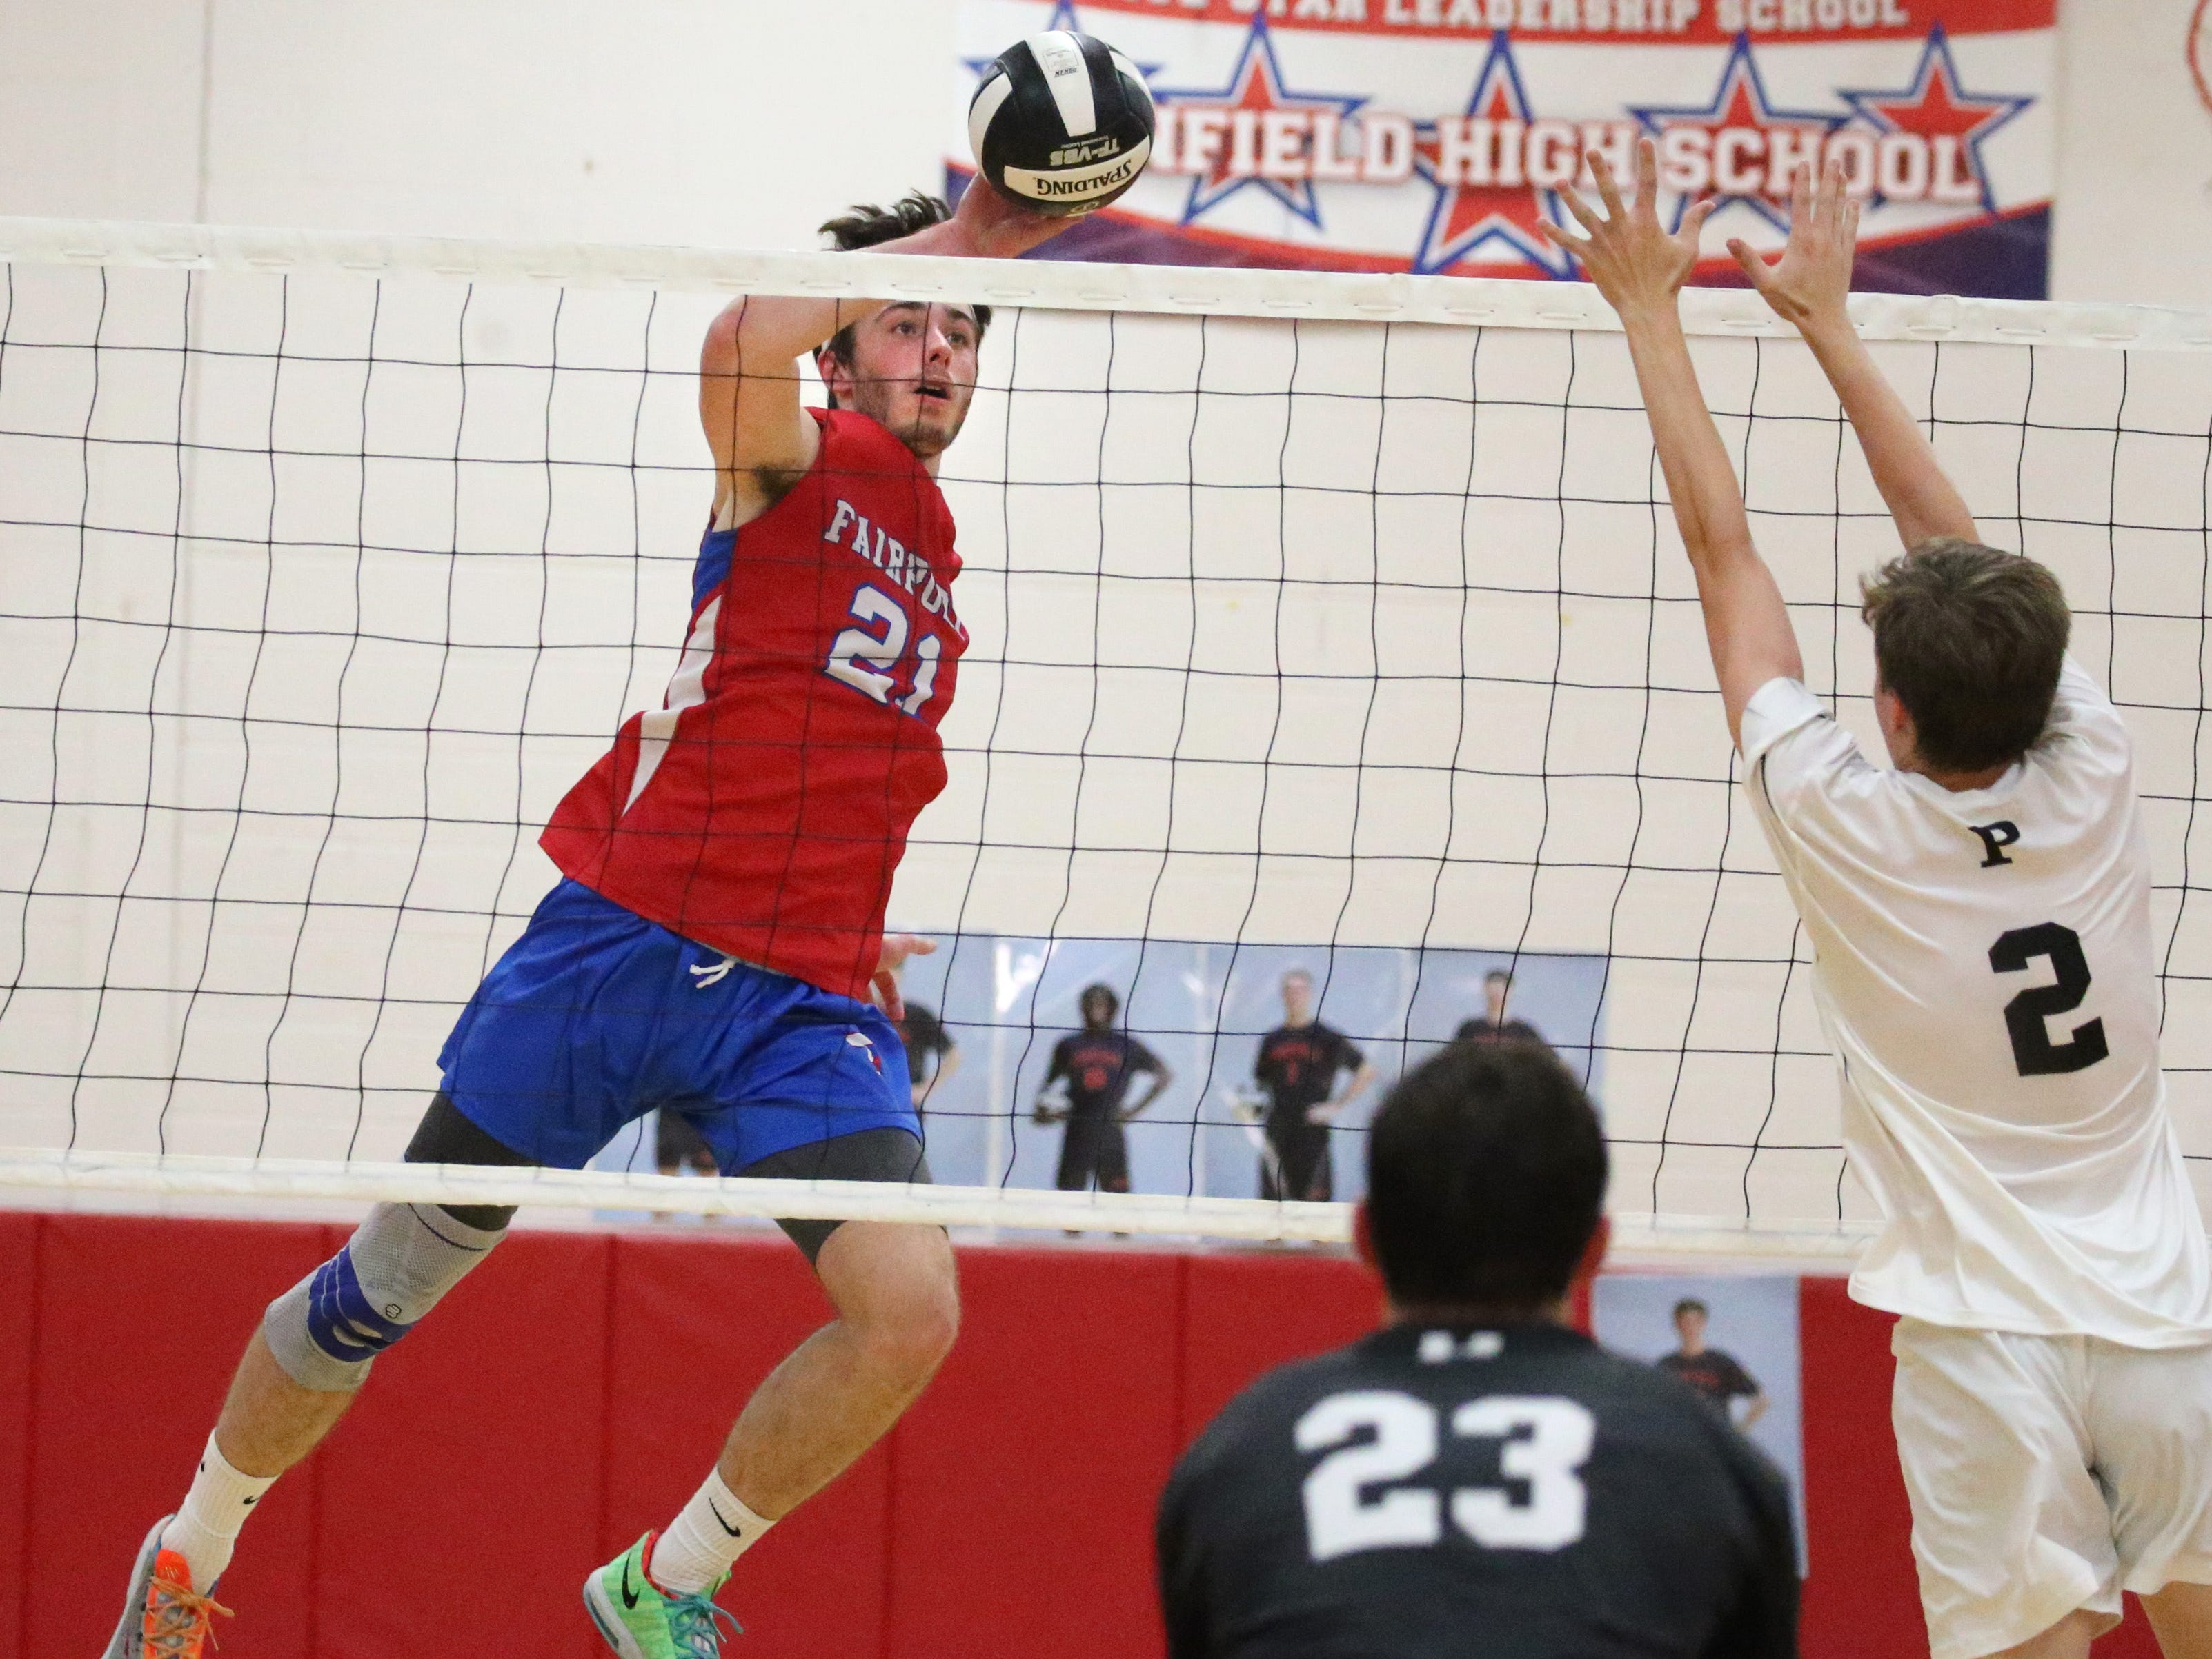 Fairport's Matt Beiter, left, pushes the ball over the net past Penfield's Jordan Klembczyk, right.